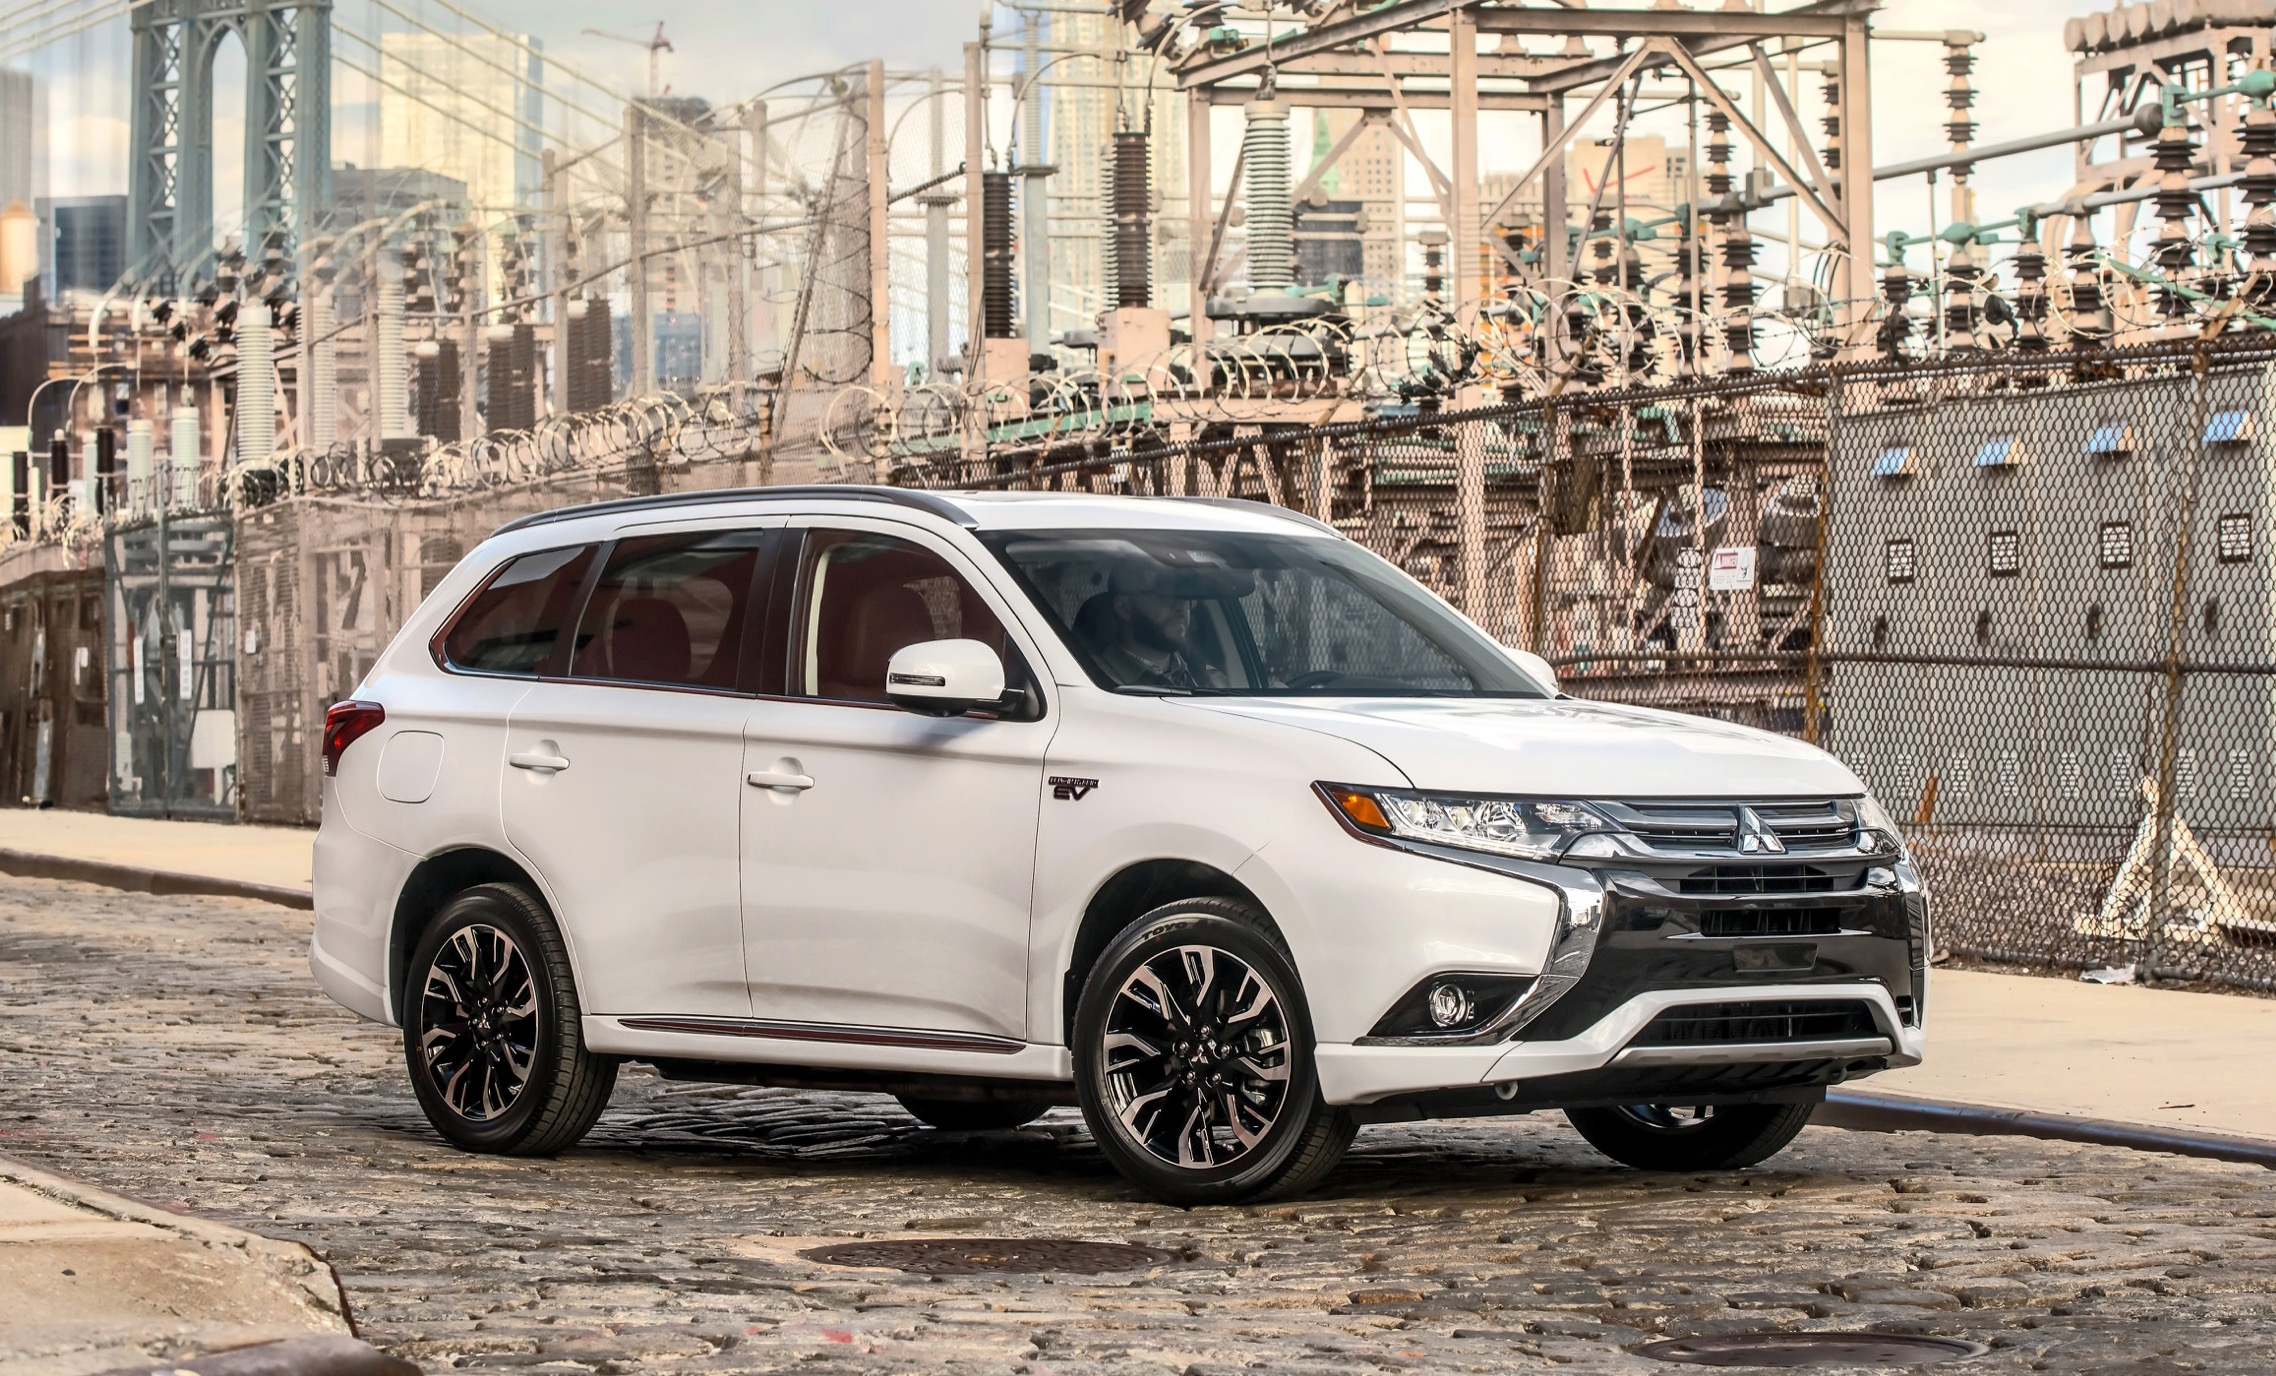 How Soon Is Now: Mitsubishi Outlander Plug-In Hybrid Delayed to Summer 2017